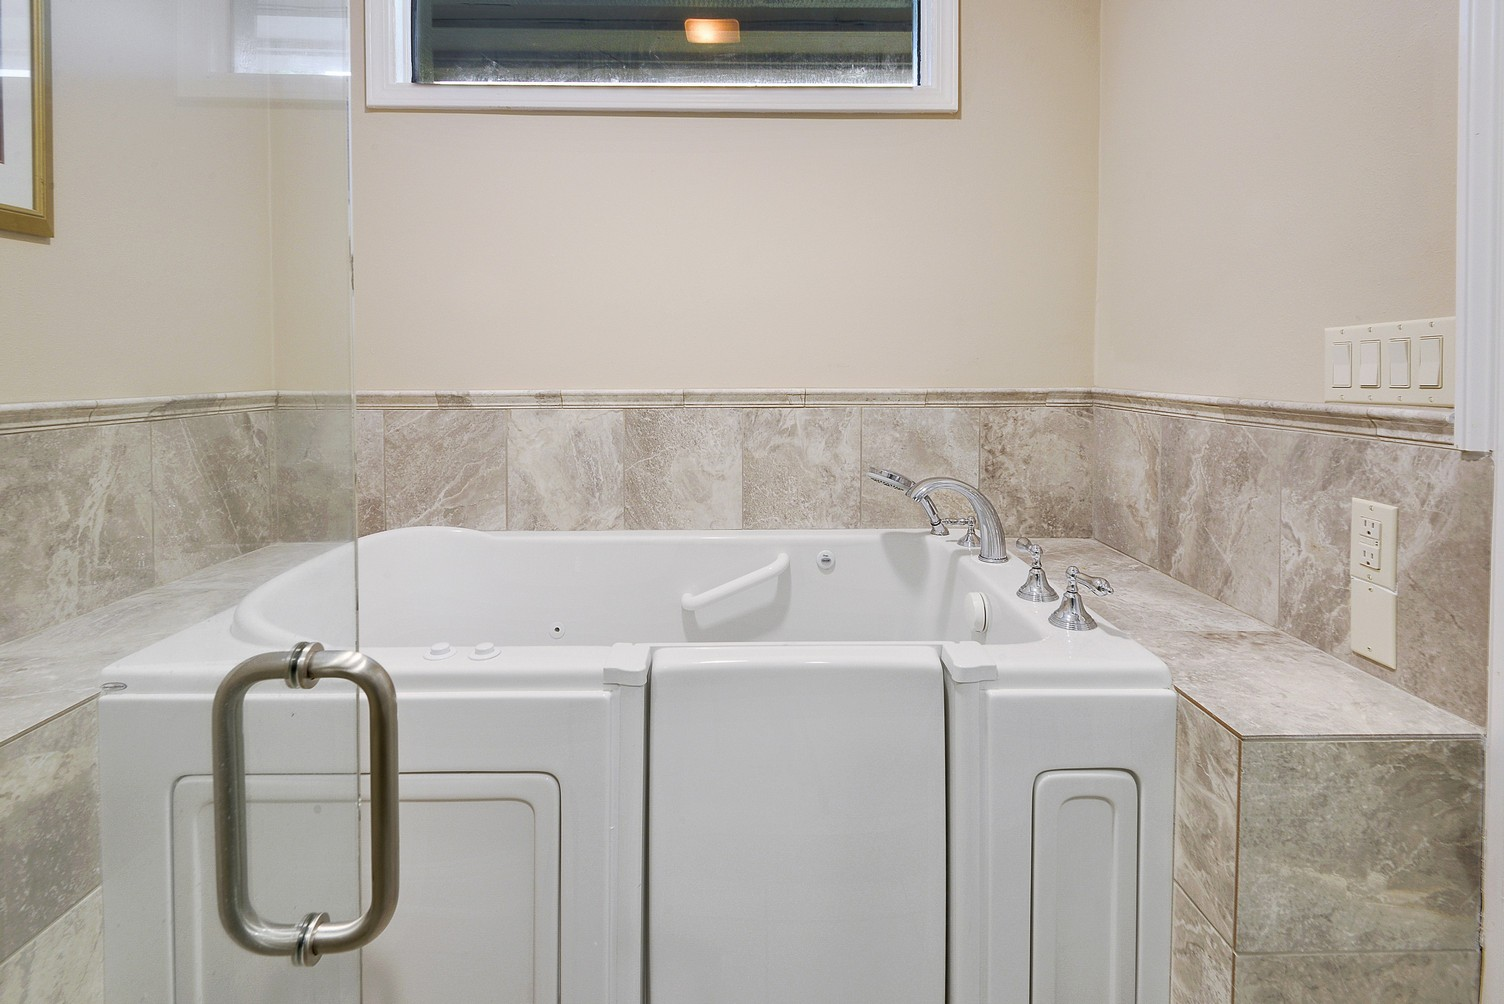 Walk in tub bathroom remodeling in baton rouge zitro for Bath remodel contractors